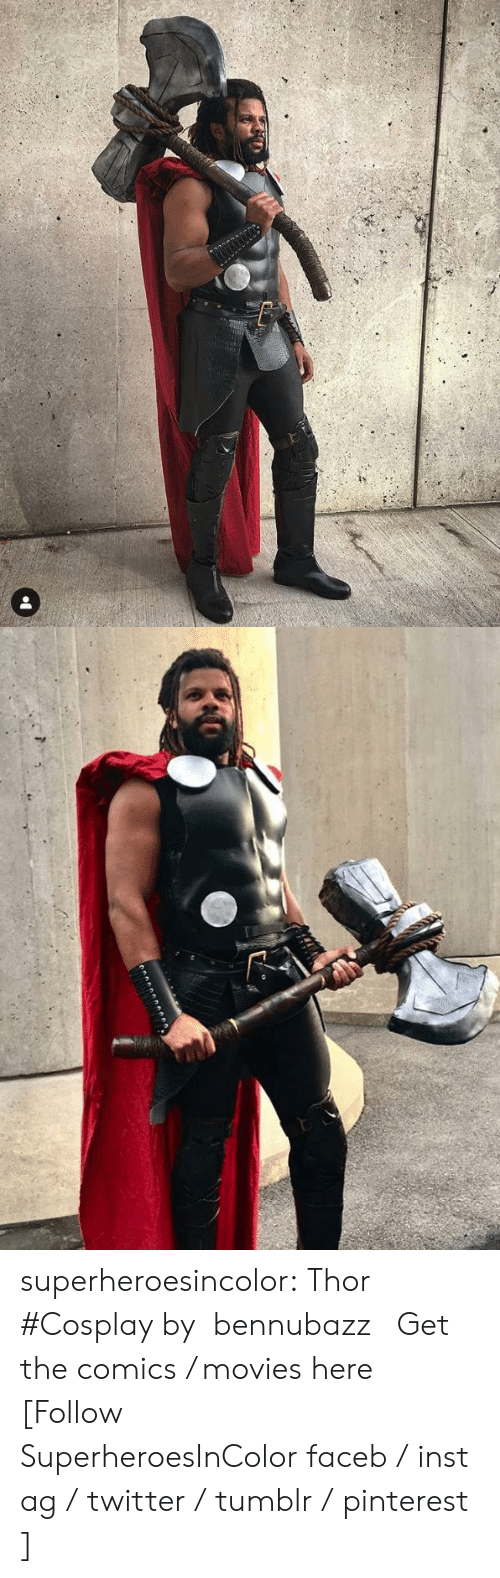 Facebook, Family, and Instagram: superheroesincolor: Thor #Cosplay bybennubazz  Get the comics / movieshere [Follow SuperheroesInColorfaceb/instag/twitter/tumblr/pinterest]